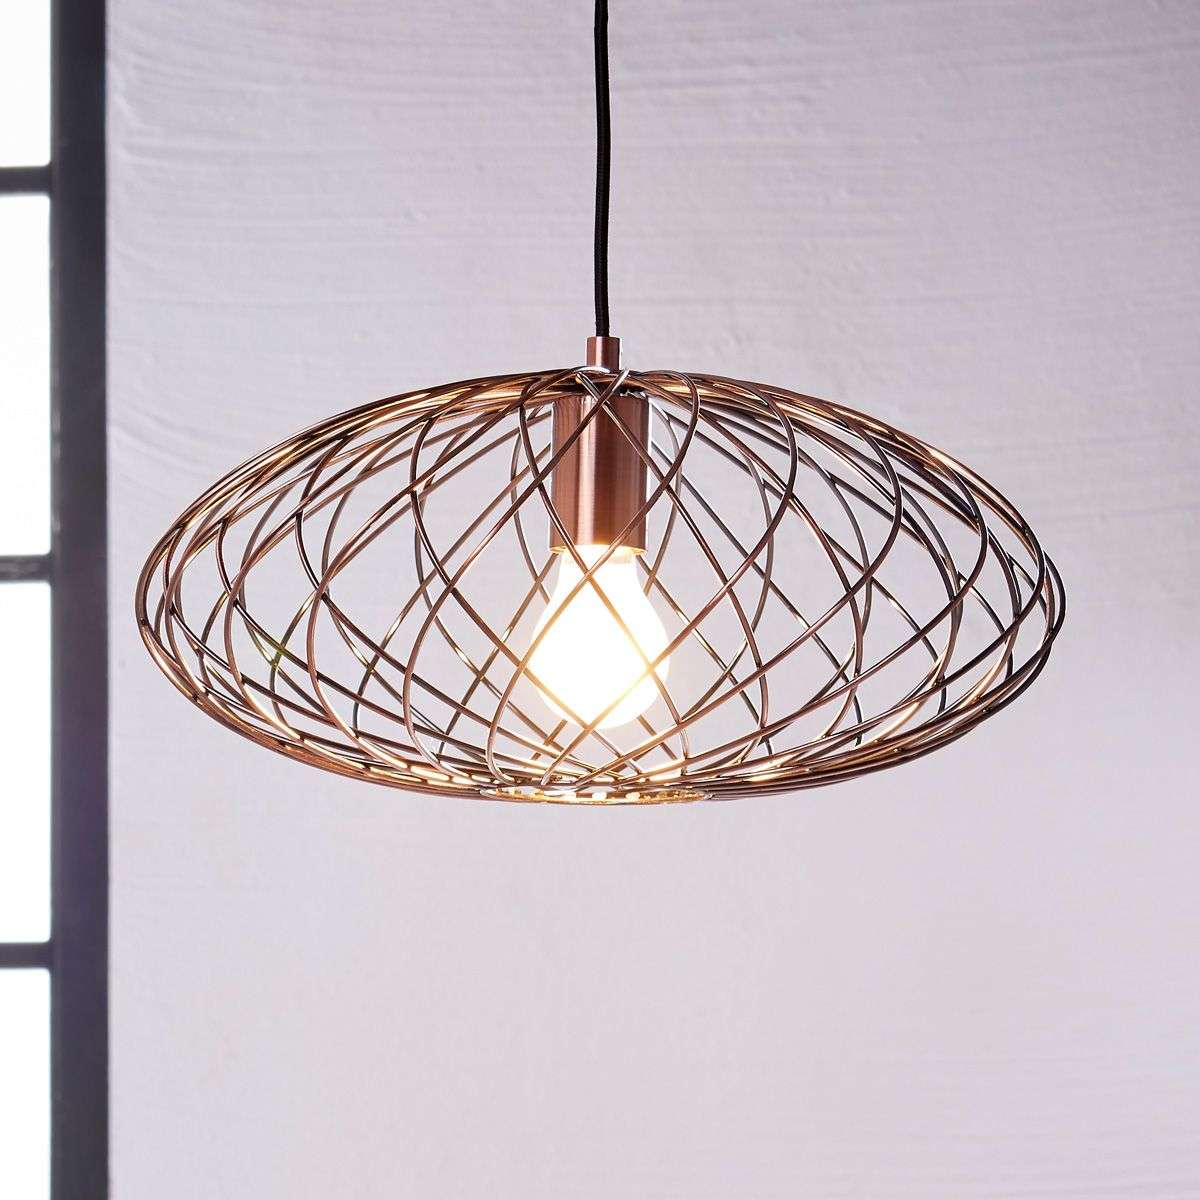 Oval pendant lamp jilla made from metal lights oval pendant lamp jilla made from metal 9620883 32 aloadofball Images